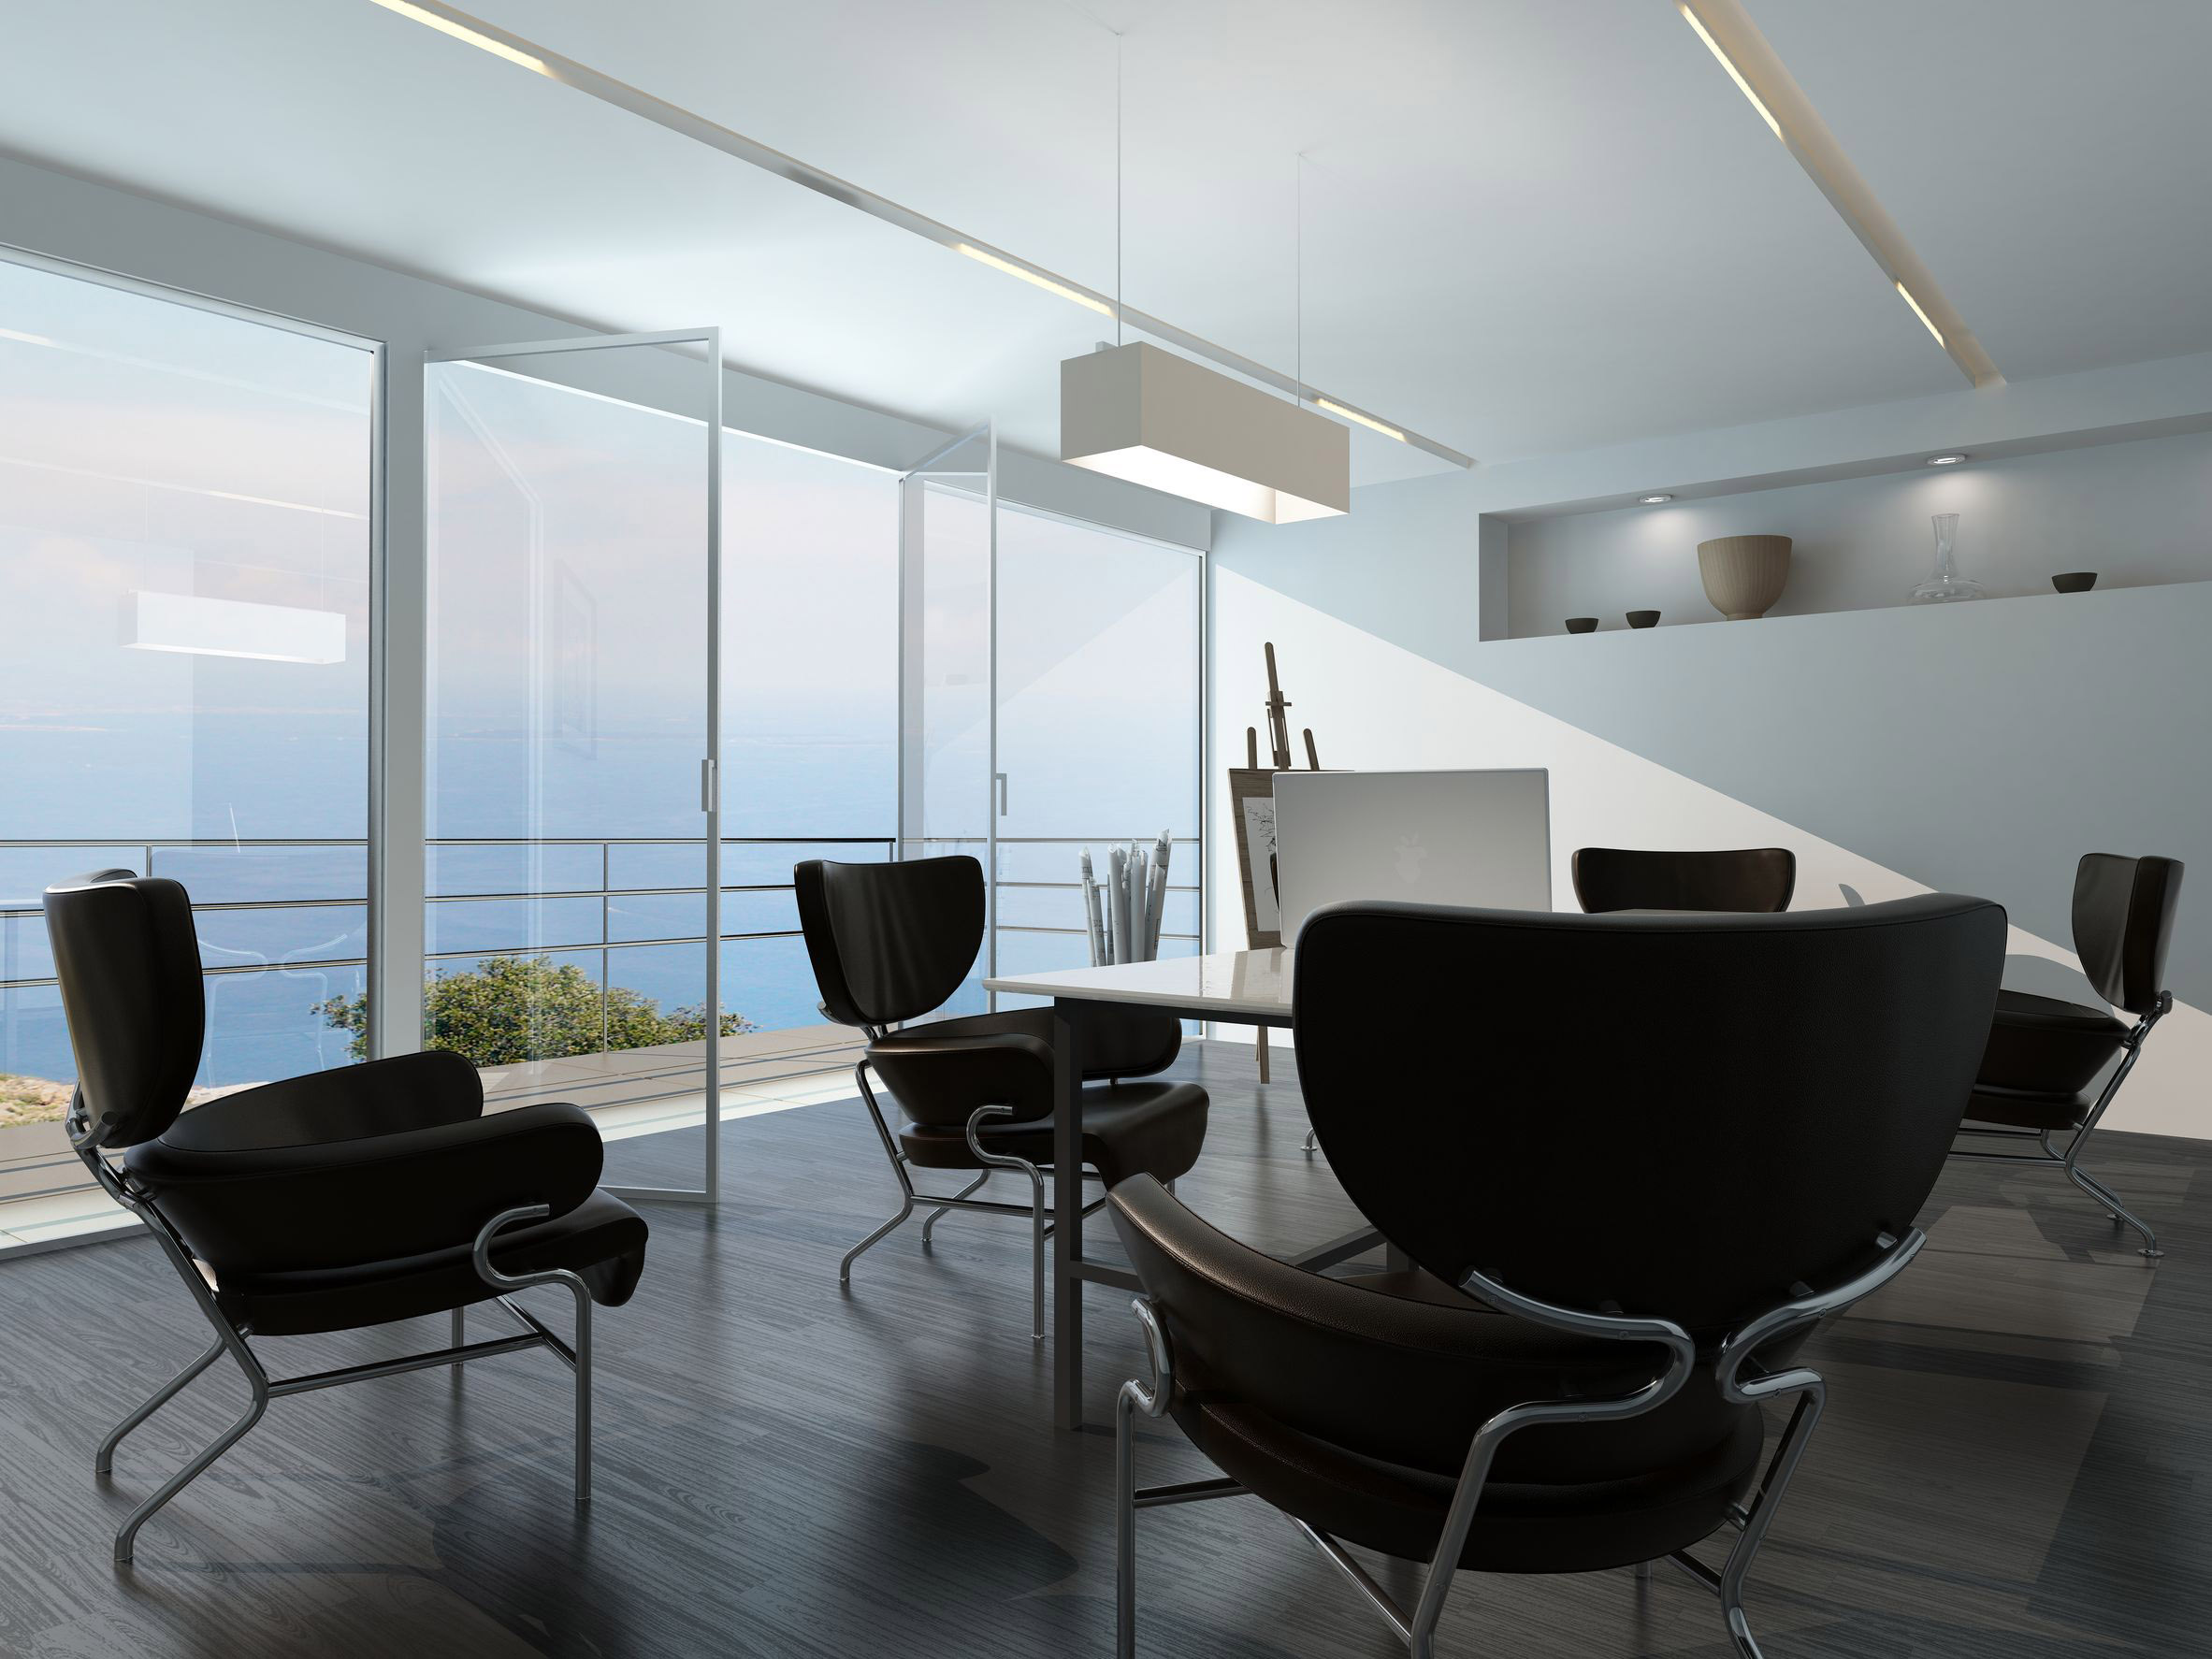 contemporary office conference room interior with scattered armchairs around a central table in front of a glass wall overlooking the ocean and an easel on a stand in the corner